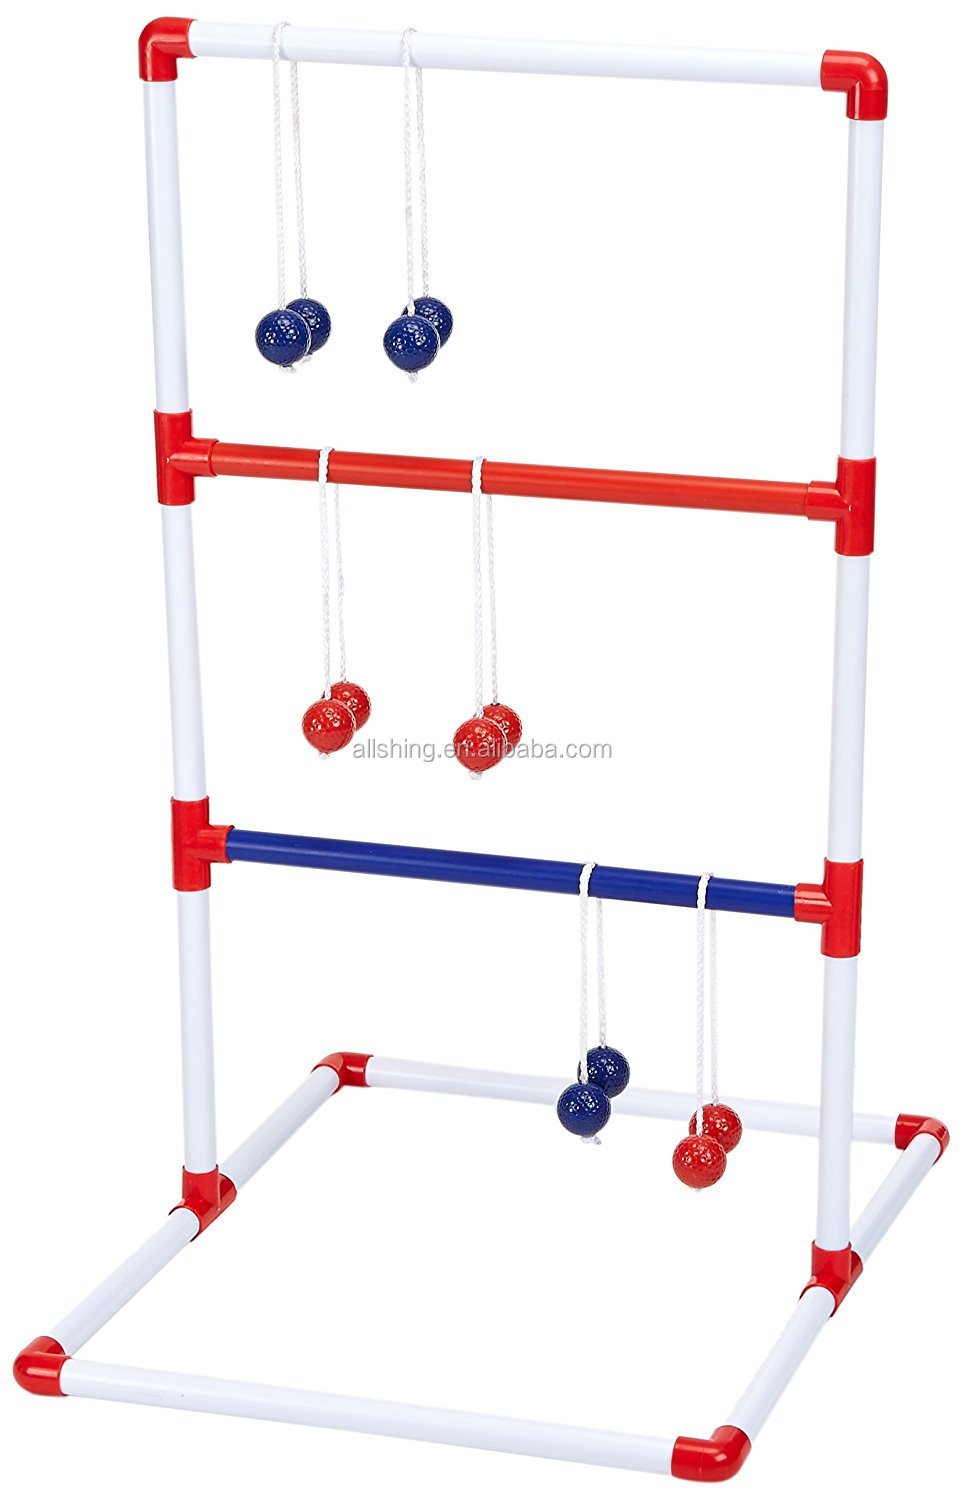 Wholesale Indoor / Outdoor Ladder Toss Game Set with 6 Rubber Bolos, carrying Case, Score Trackers